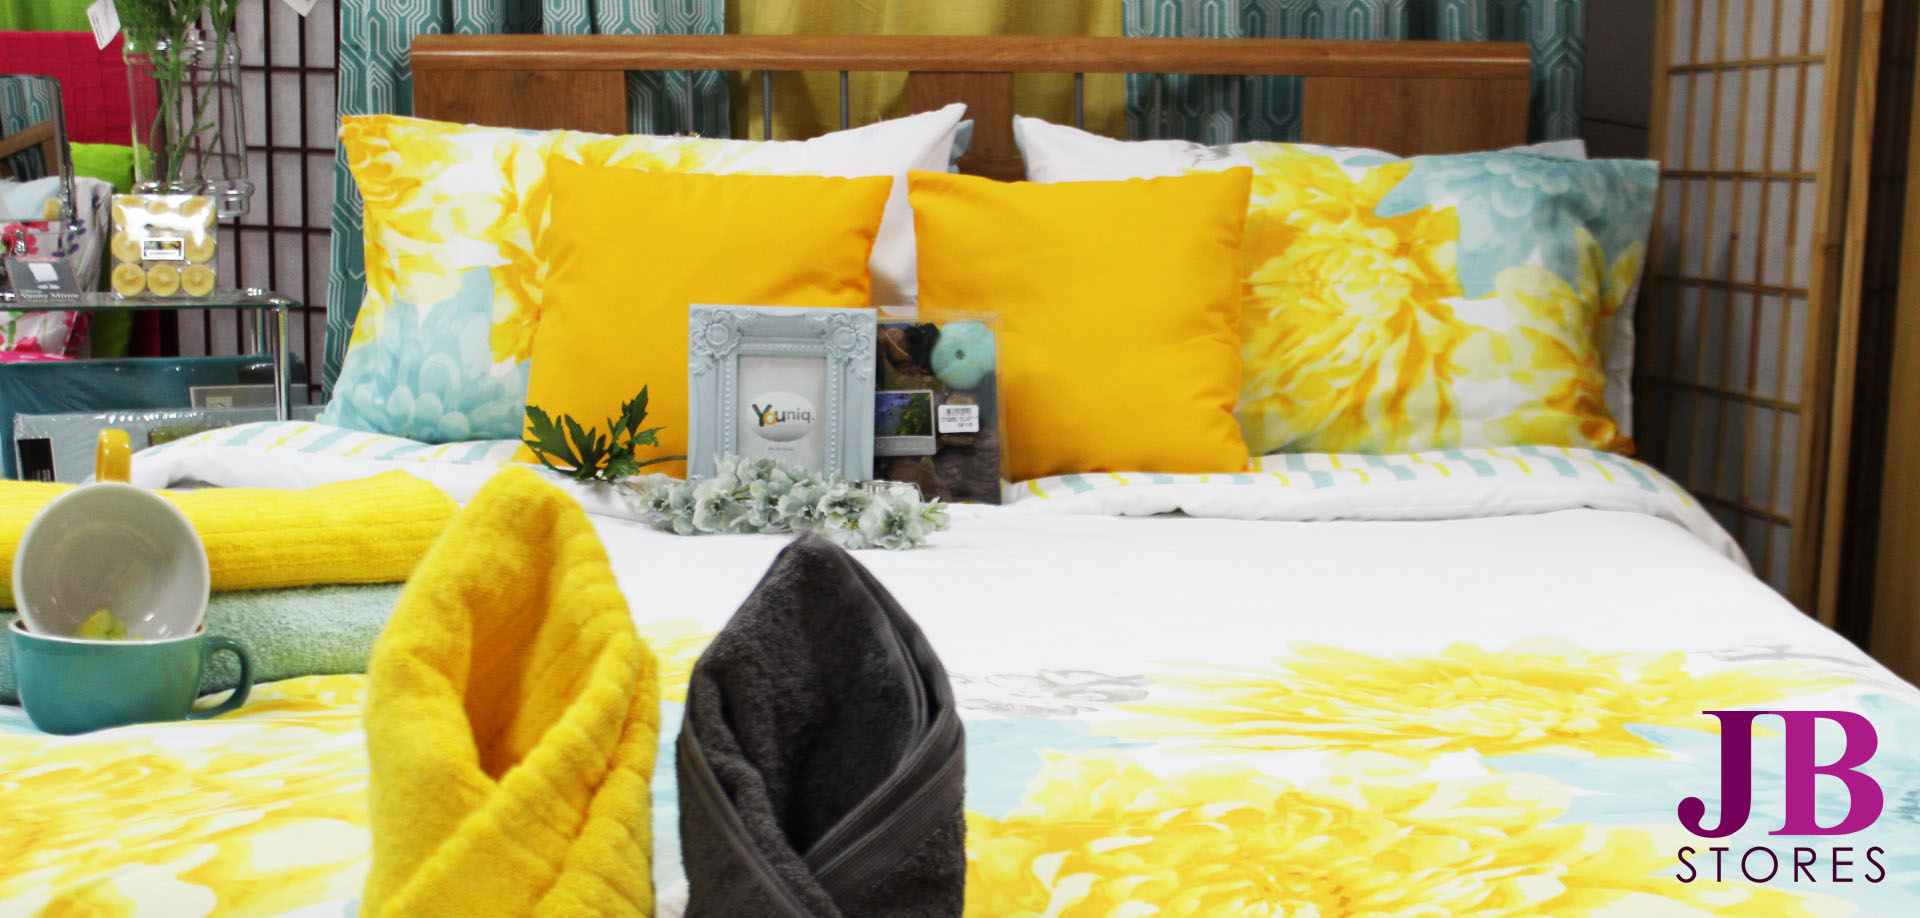 J B Stores - Bed Linen